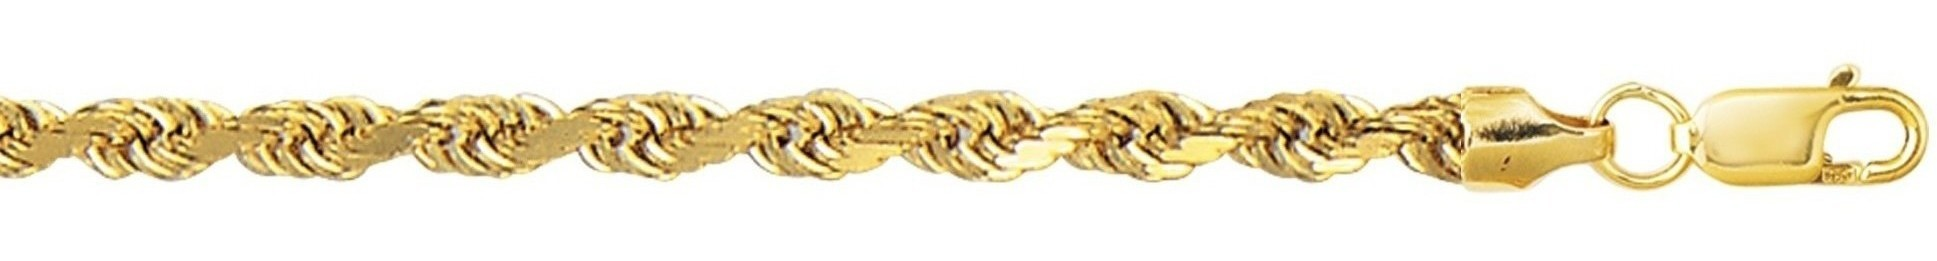 "22"" 10K Yellow Gold 4.0mm (1/6"") Polished Diamond Cut Hollow Sparkle Rope Chain w/ Lobster Clasp"